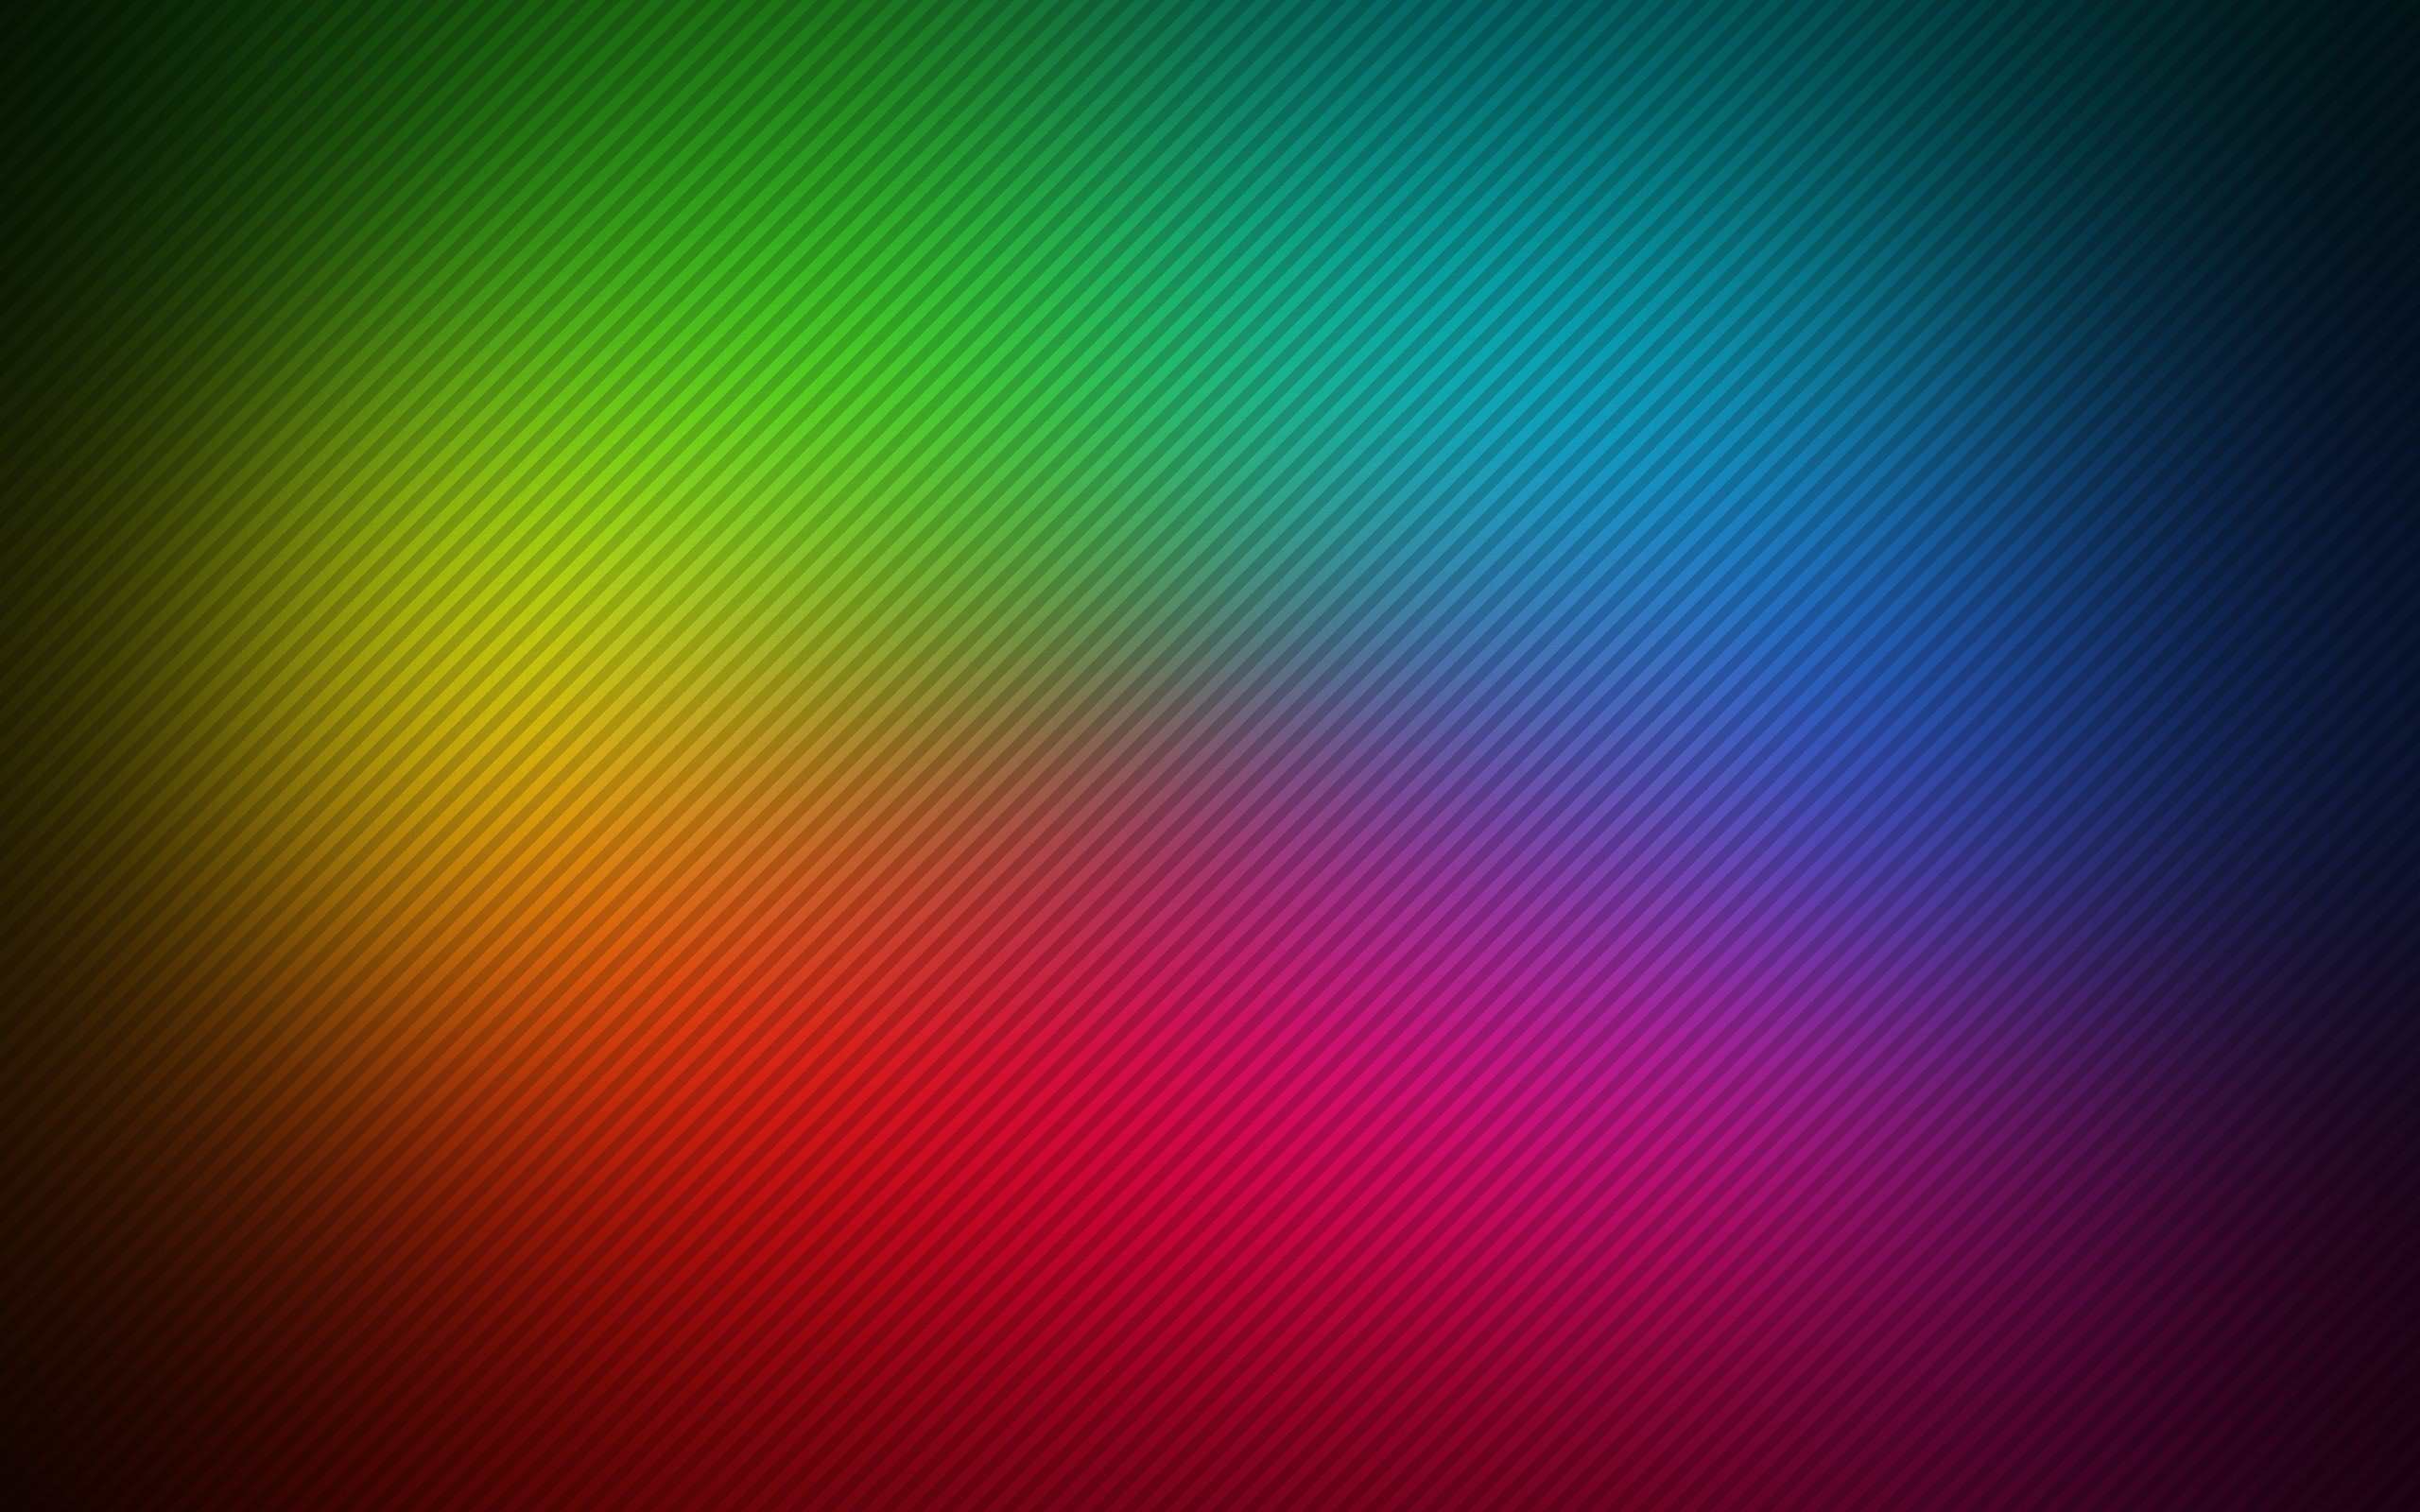 Color Wallpaper Background Hd Wallpapers